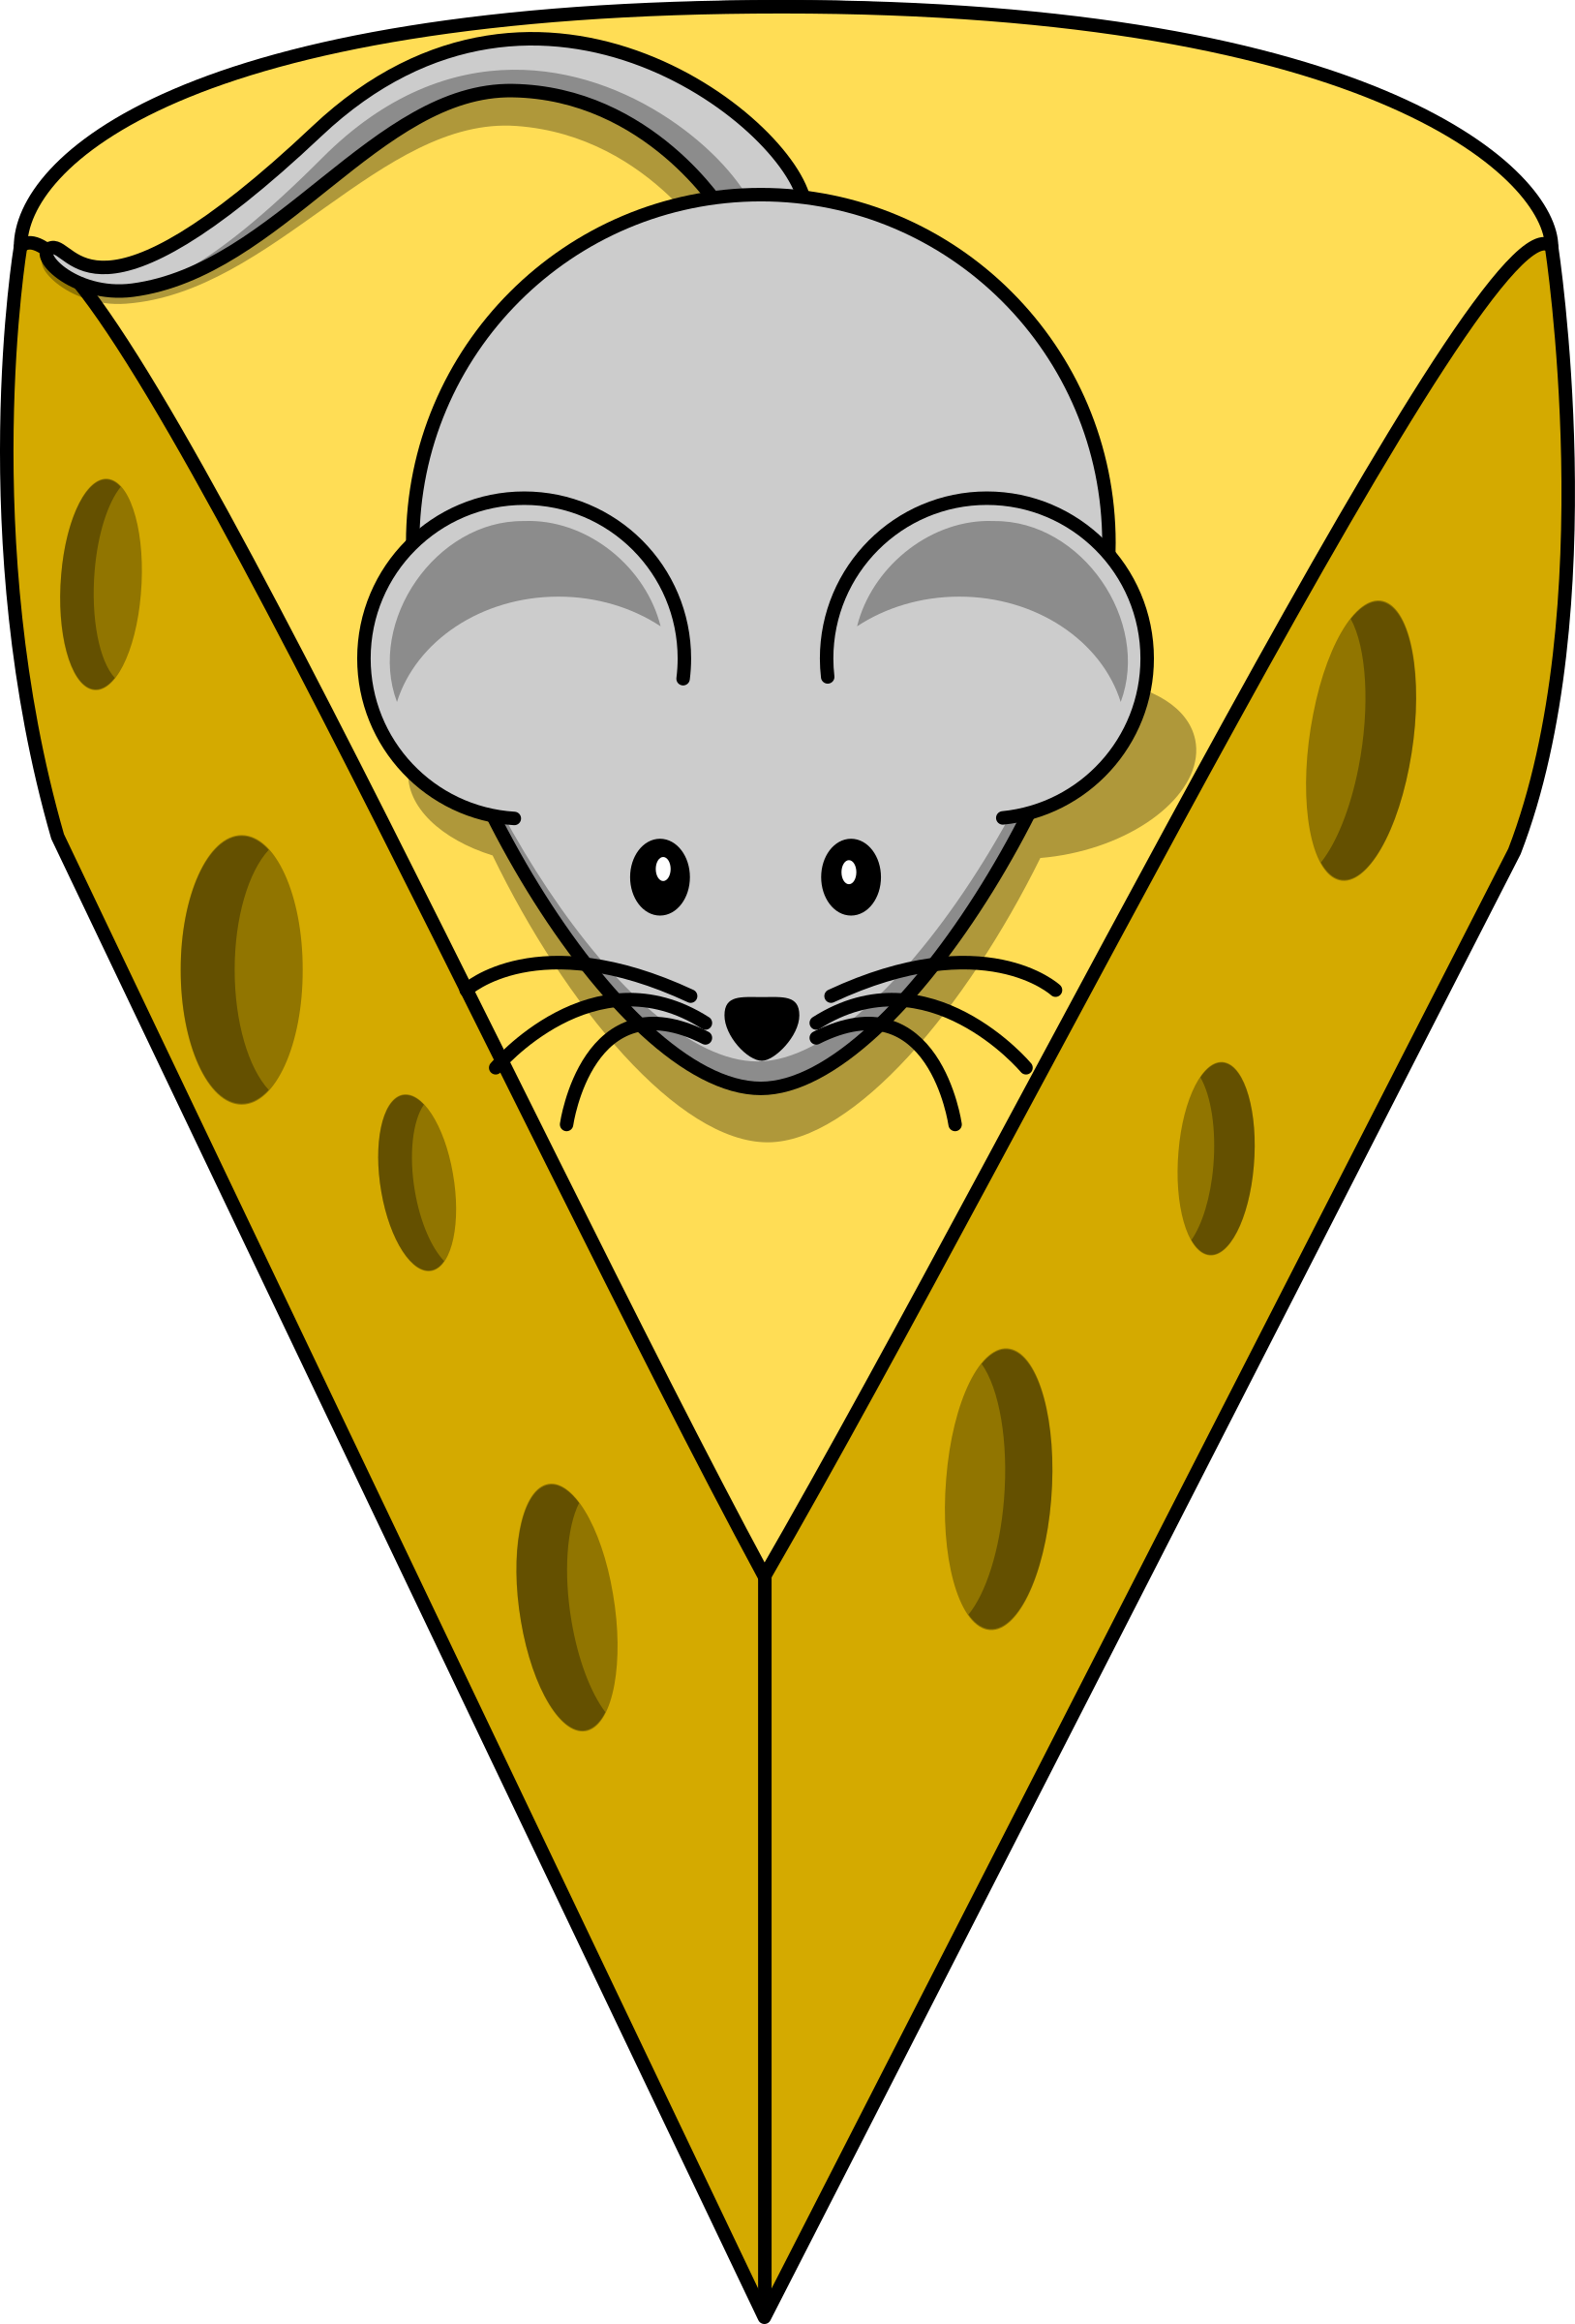 Clipart mouse simple. Cartoon on top of